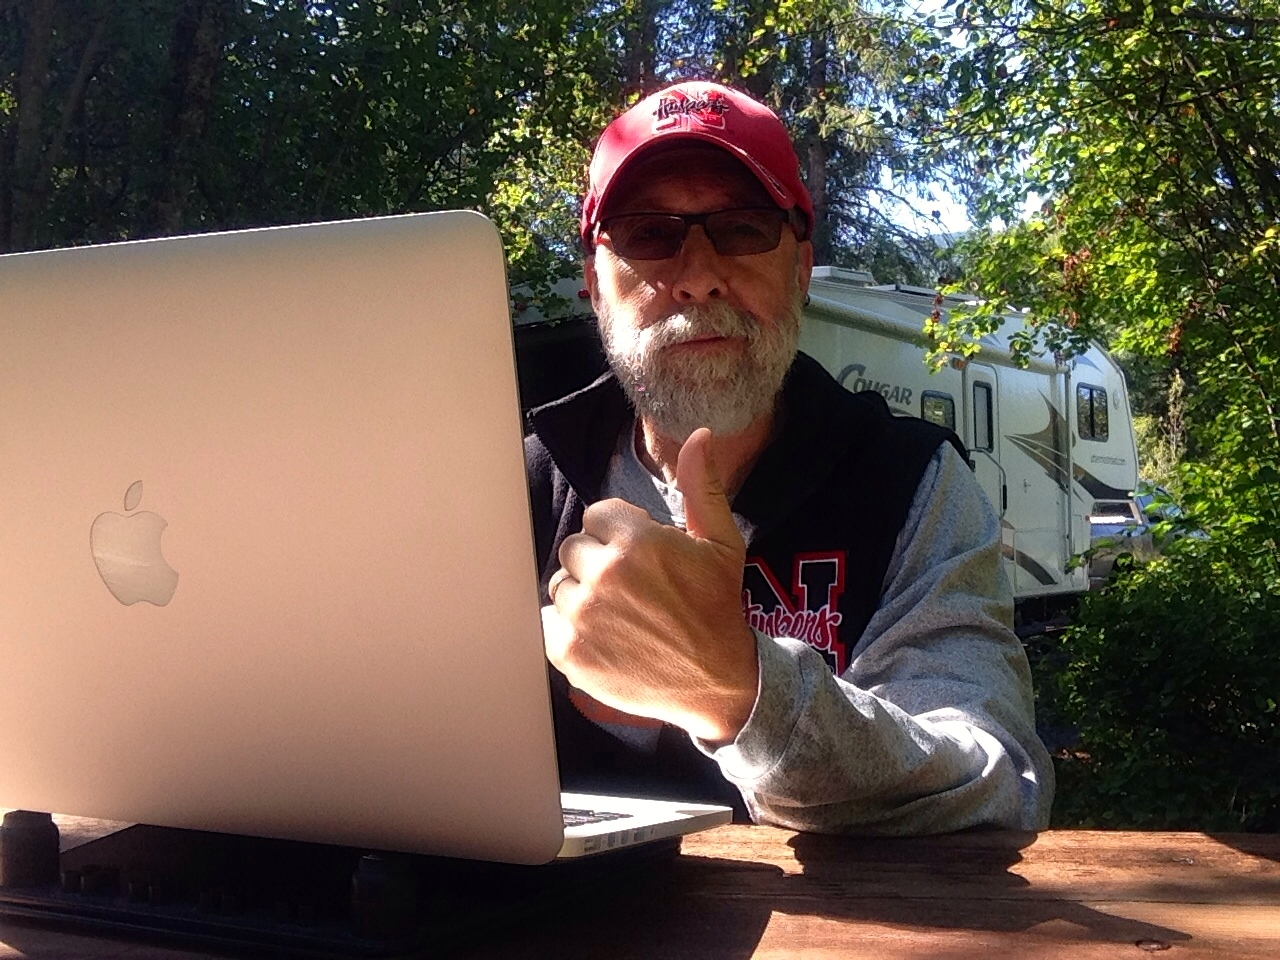 Working on LYGO at Wilderness Gateway Campground...not free but who cares!